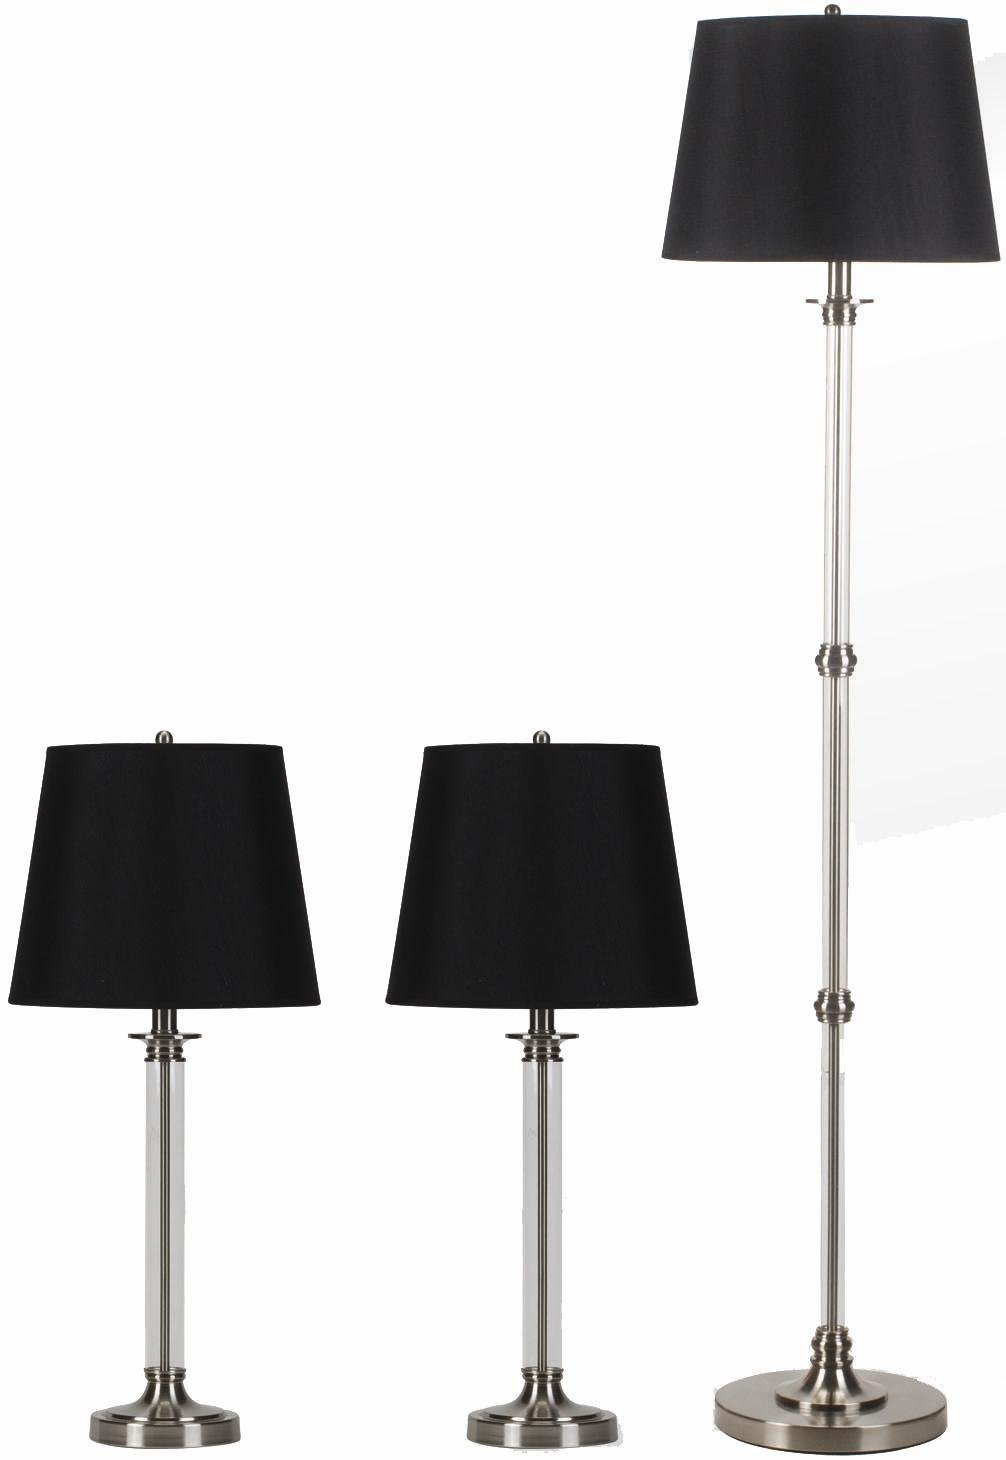 Translucent & Silver Table Floor Lamp Set Black Shades